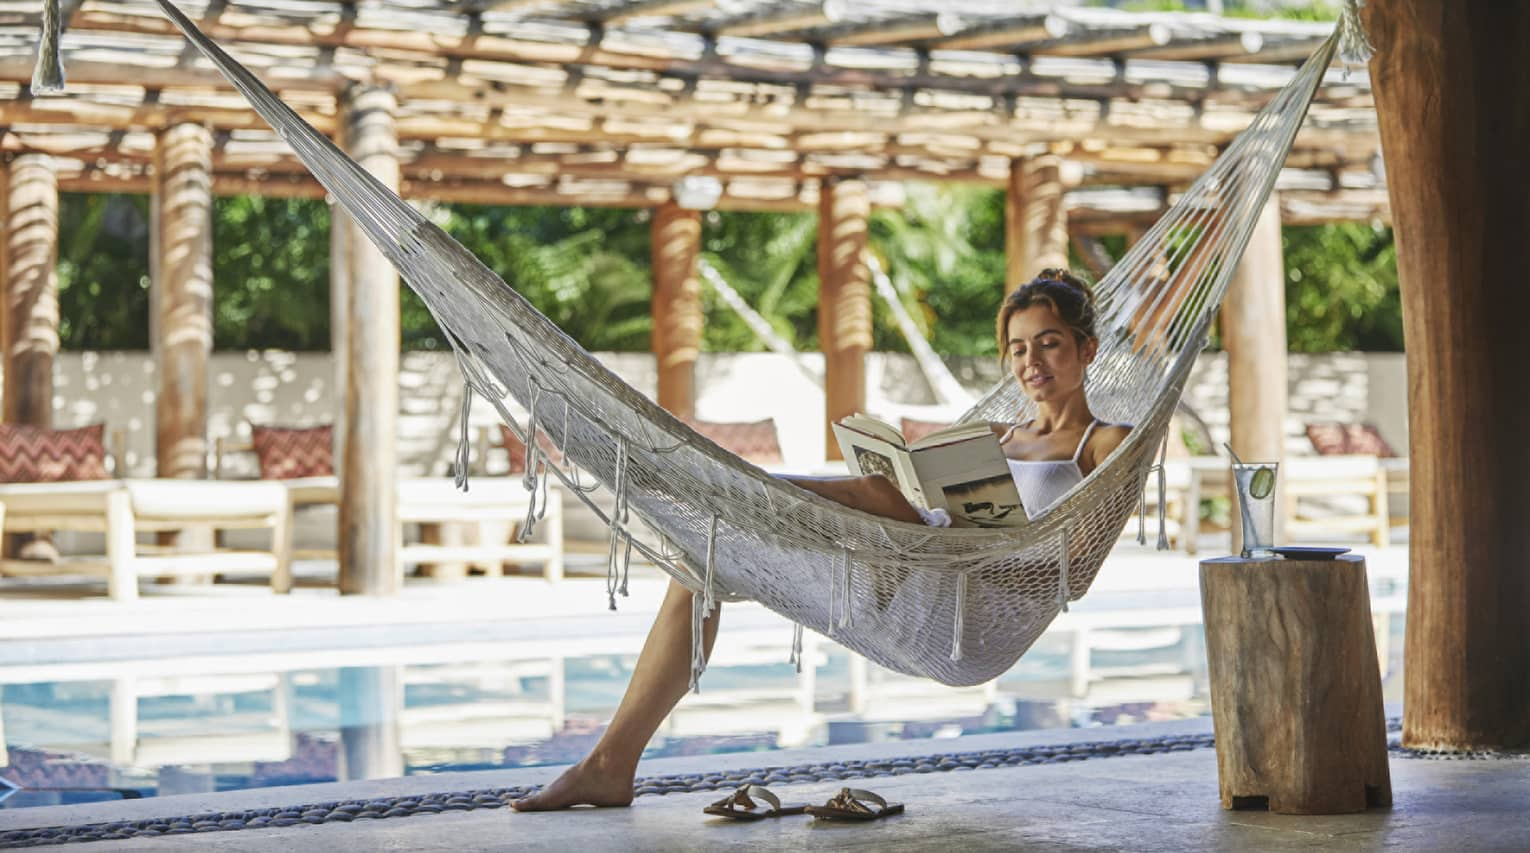 A woman reads a book in a netted hammock by the pool